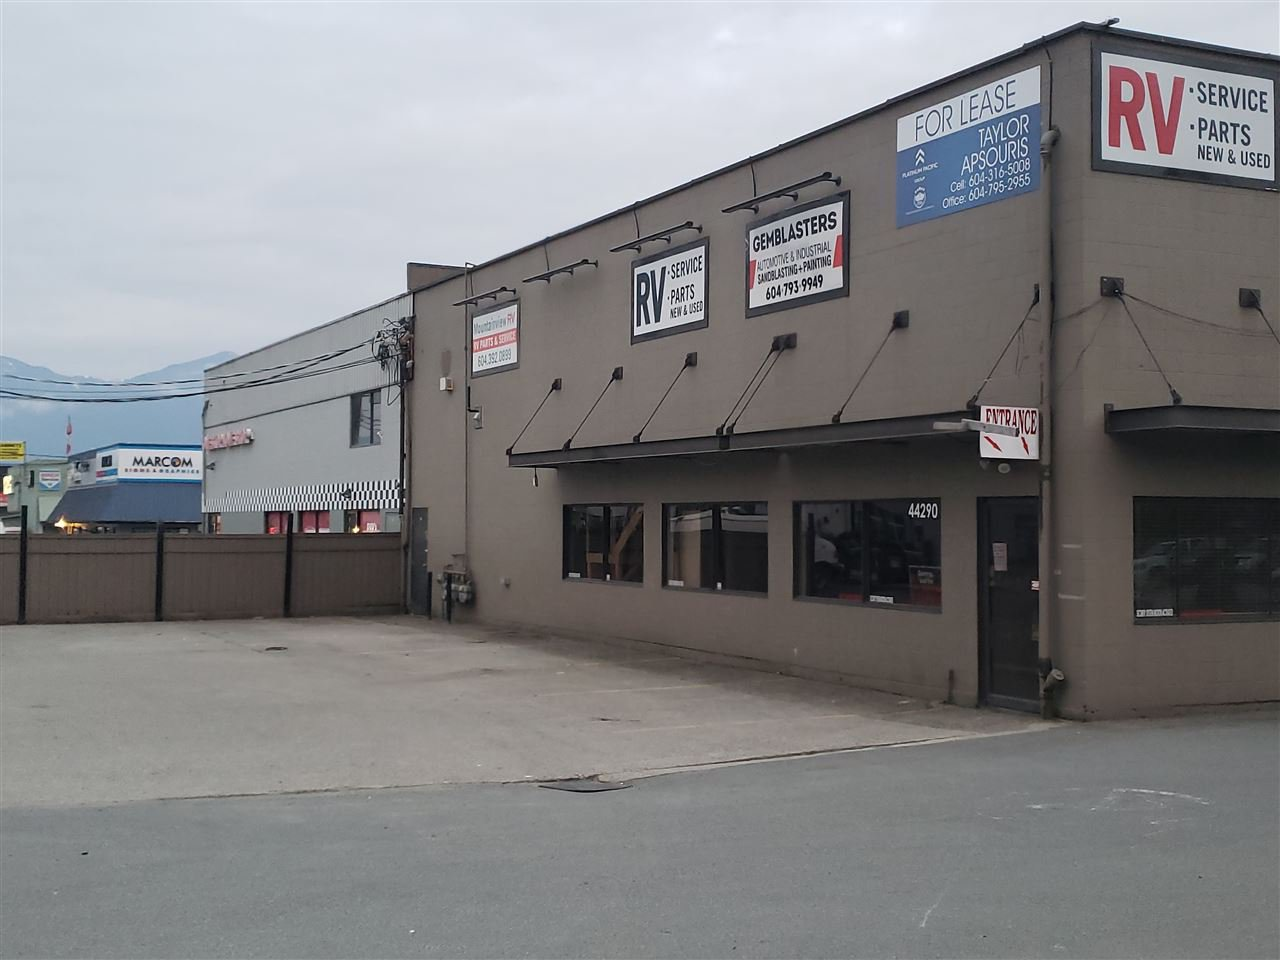 Main Photo: 1 44290 Yale Road in Chilliwack: Chilliwack Yale Rd West Industrial for sale or lease : MLS®# C8018680